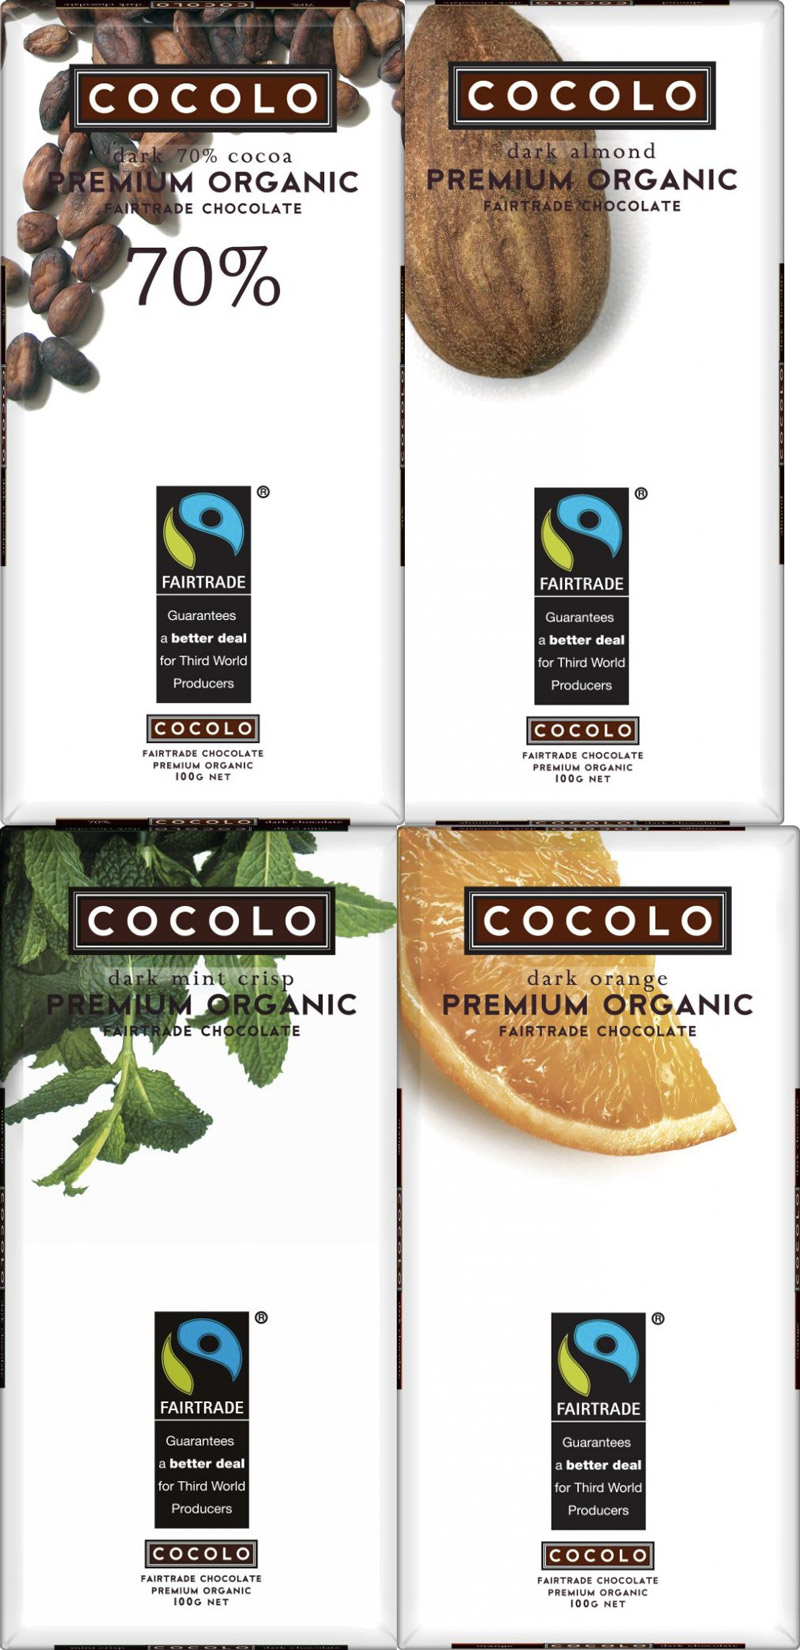 Cocolo - Fair trade, organic, dairy-free dark chocolate